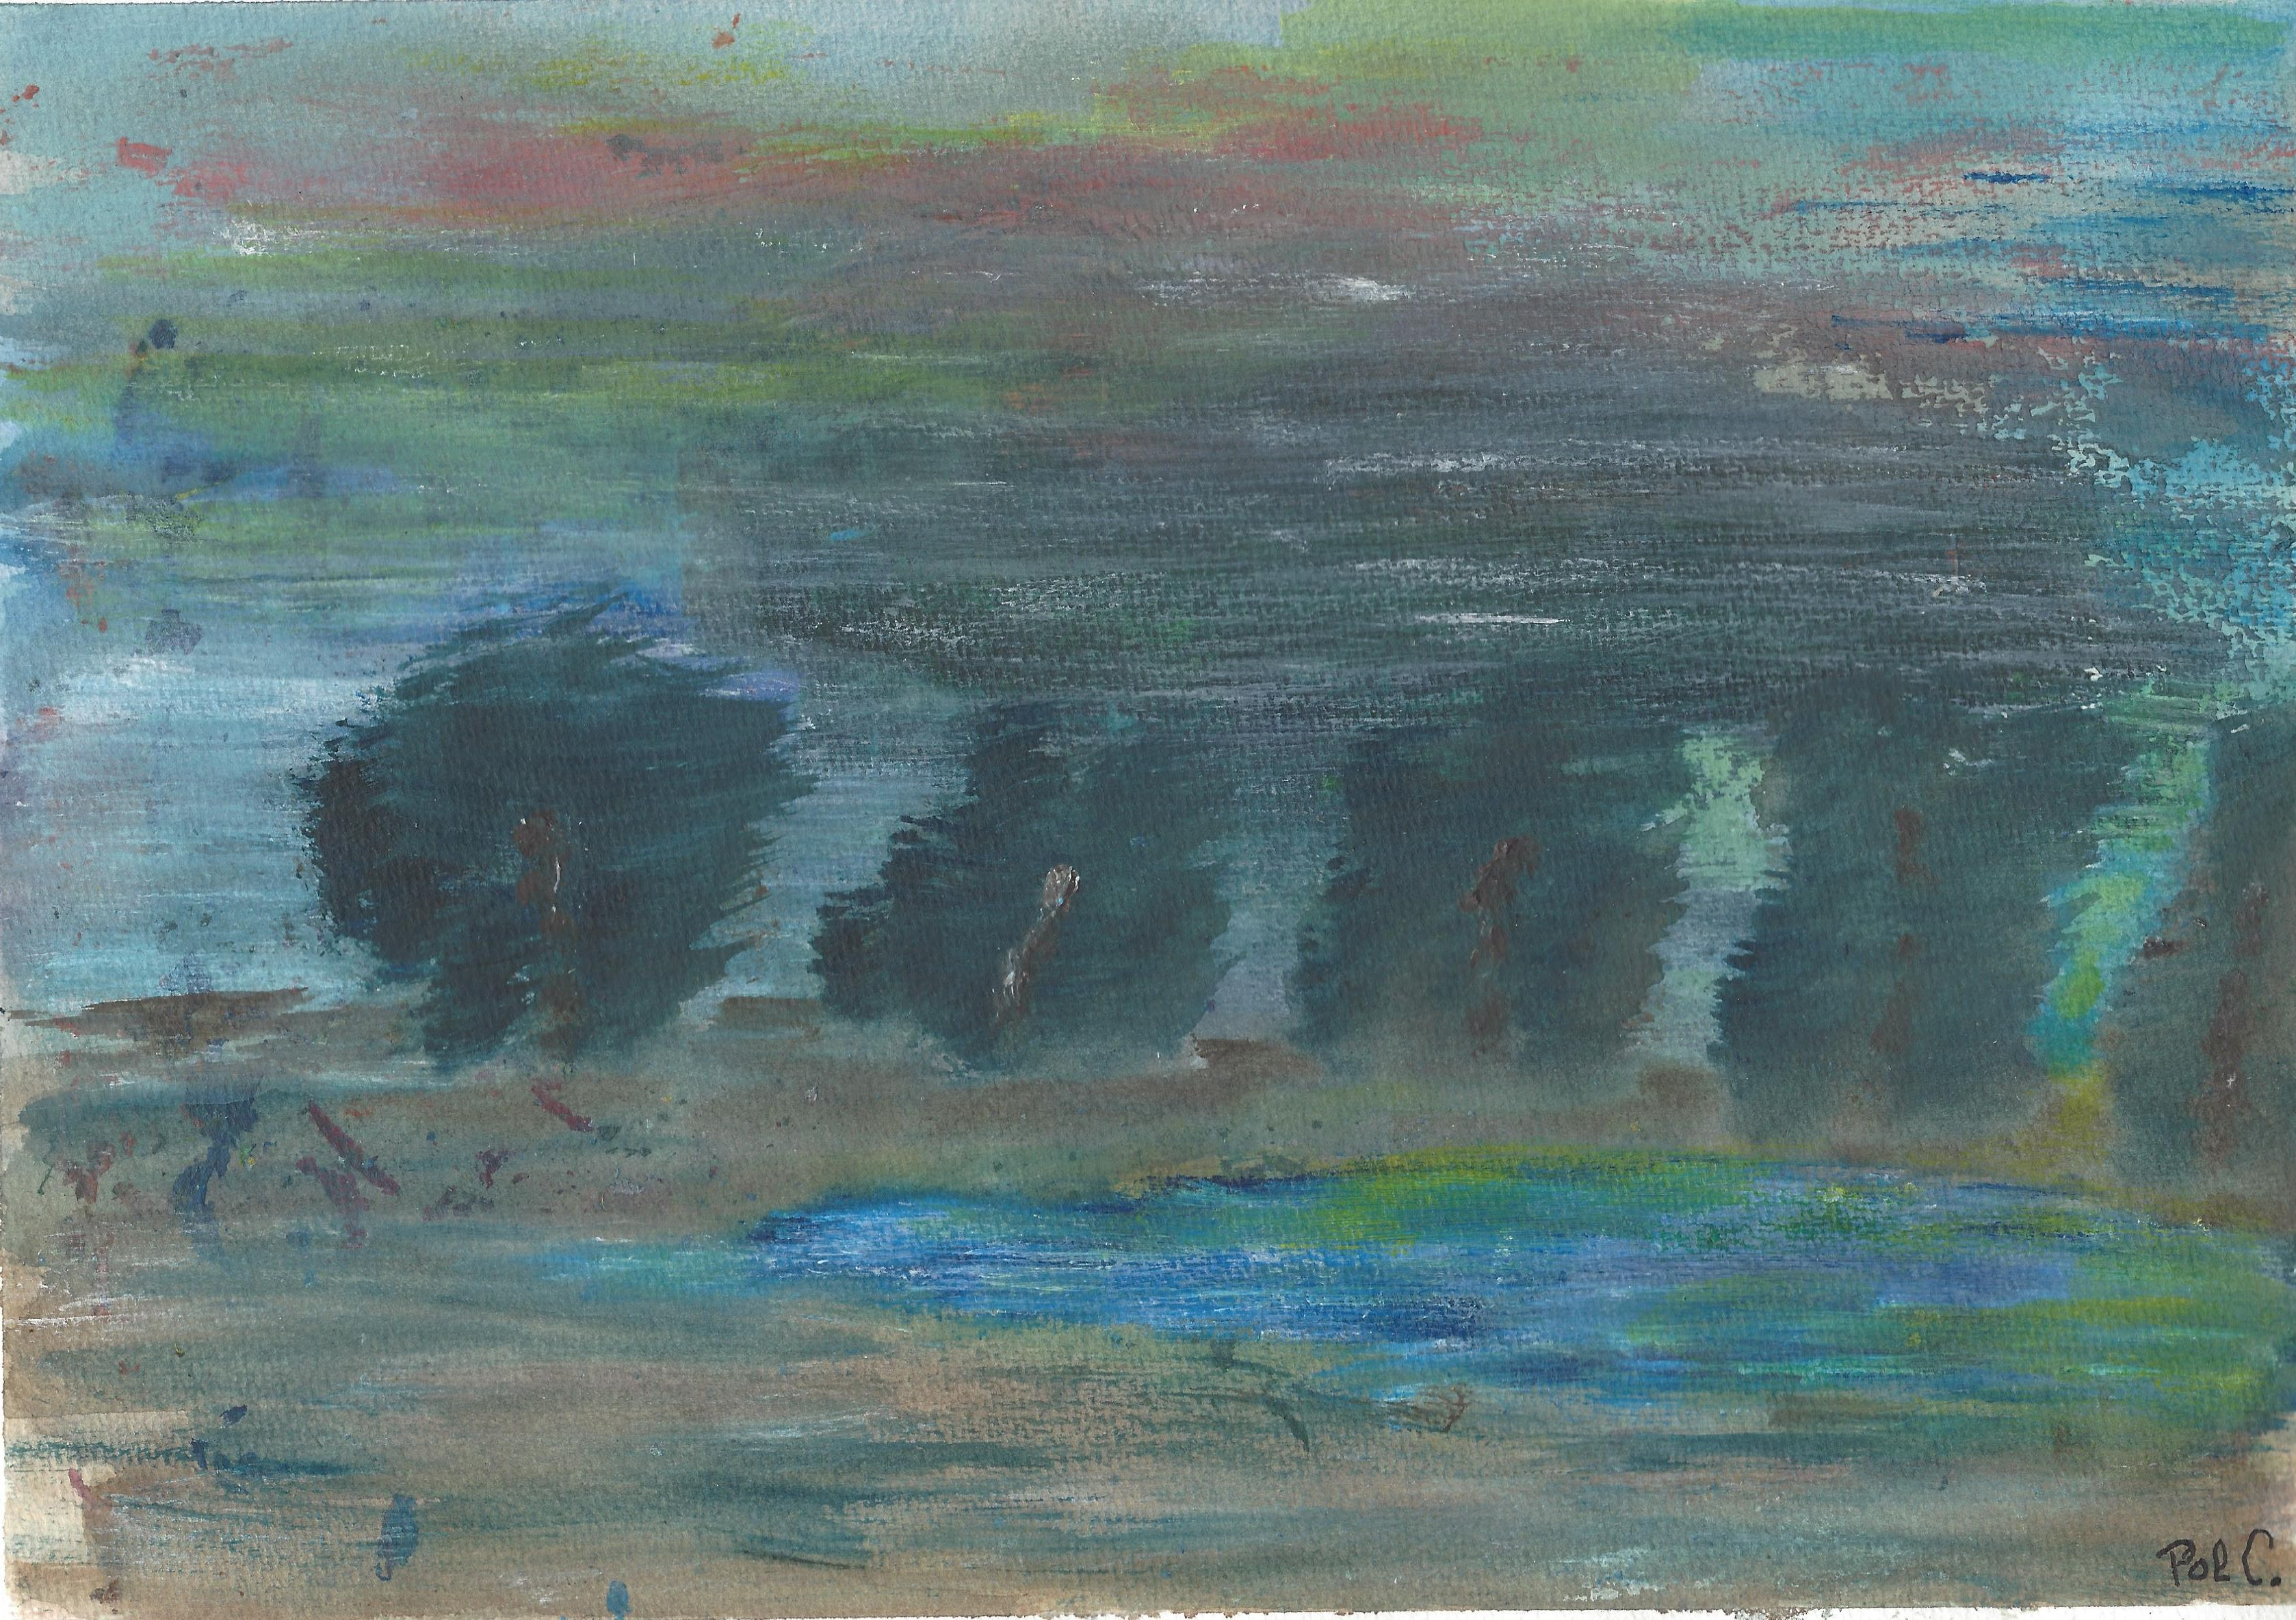 Storm (Acrylic on paper - 291215)